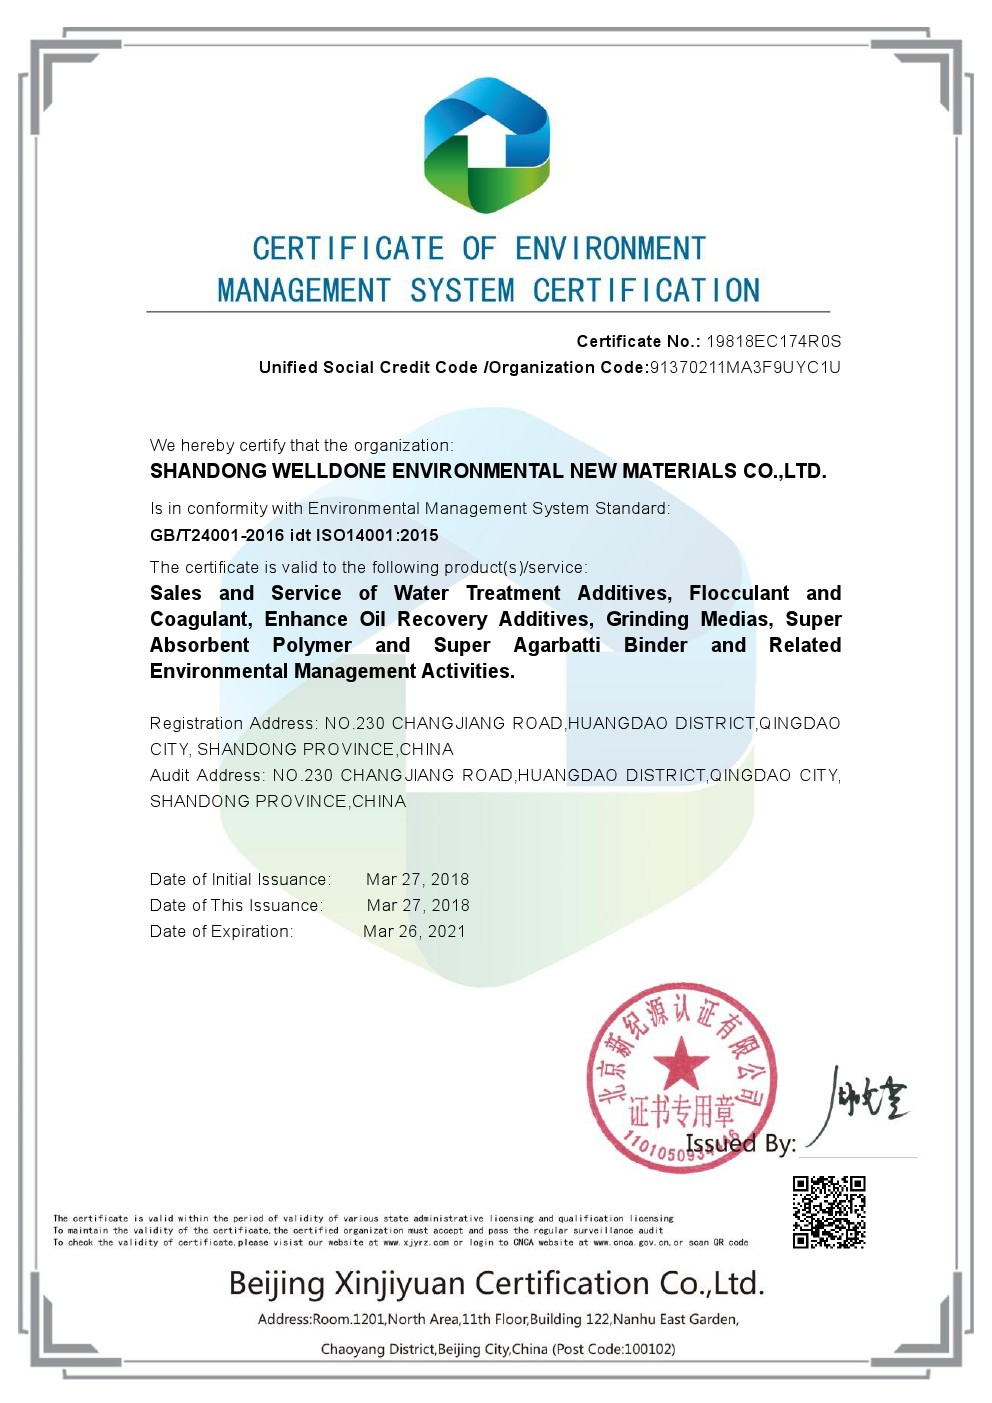 IS014001:2015 CERTIFICATE OF ENVIRONMENT MANAGEMENT SYSTEM CERTIFICATION